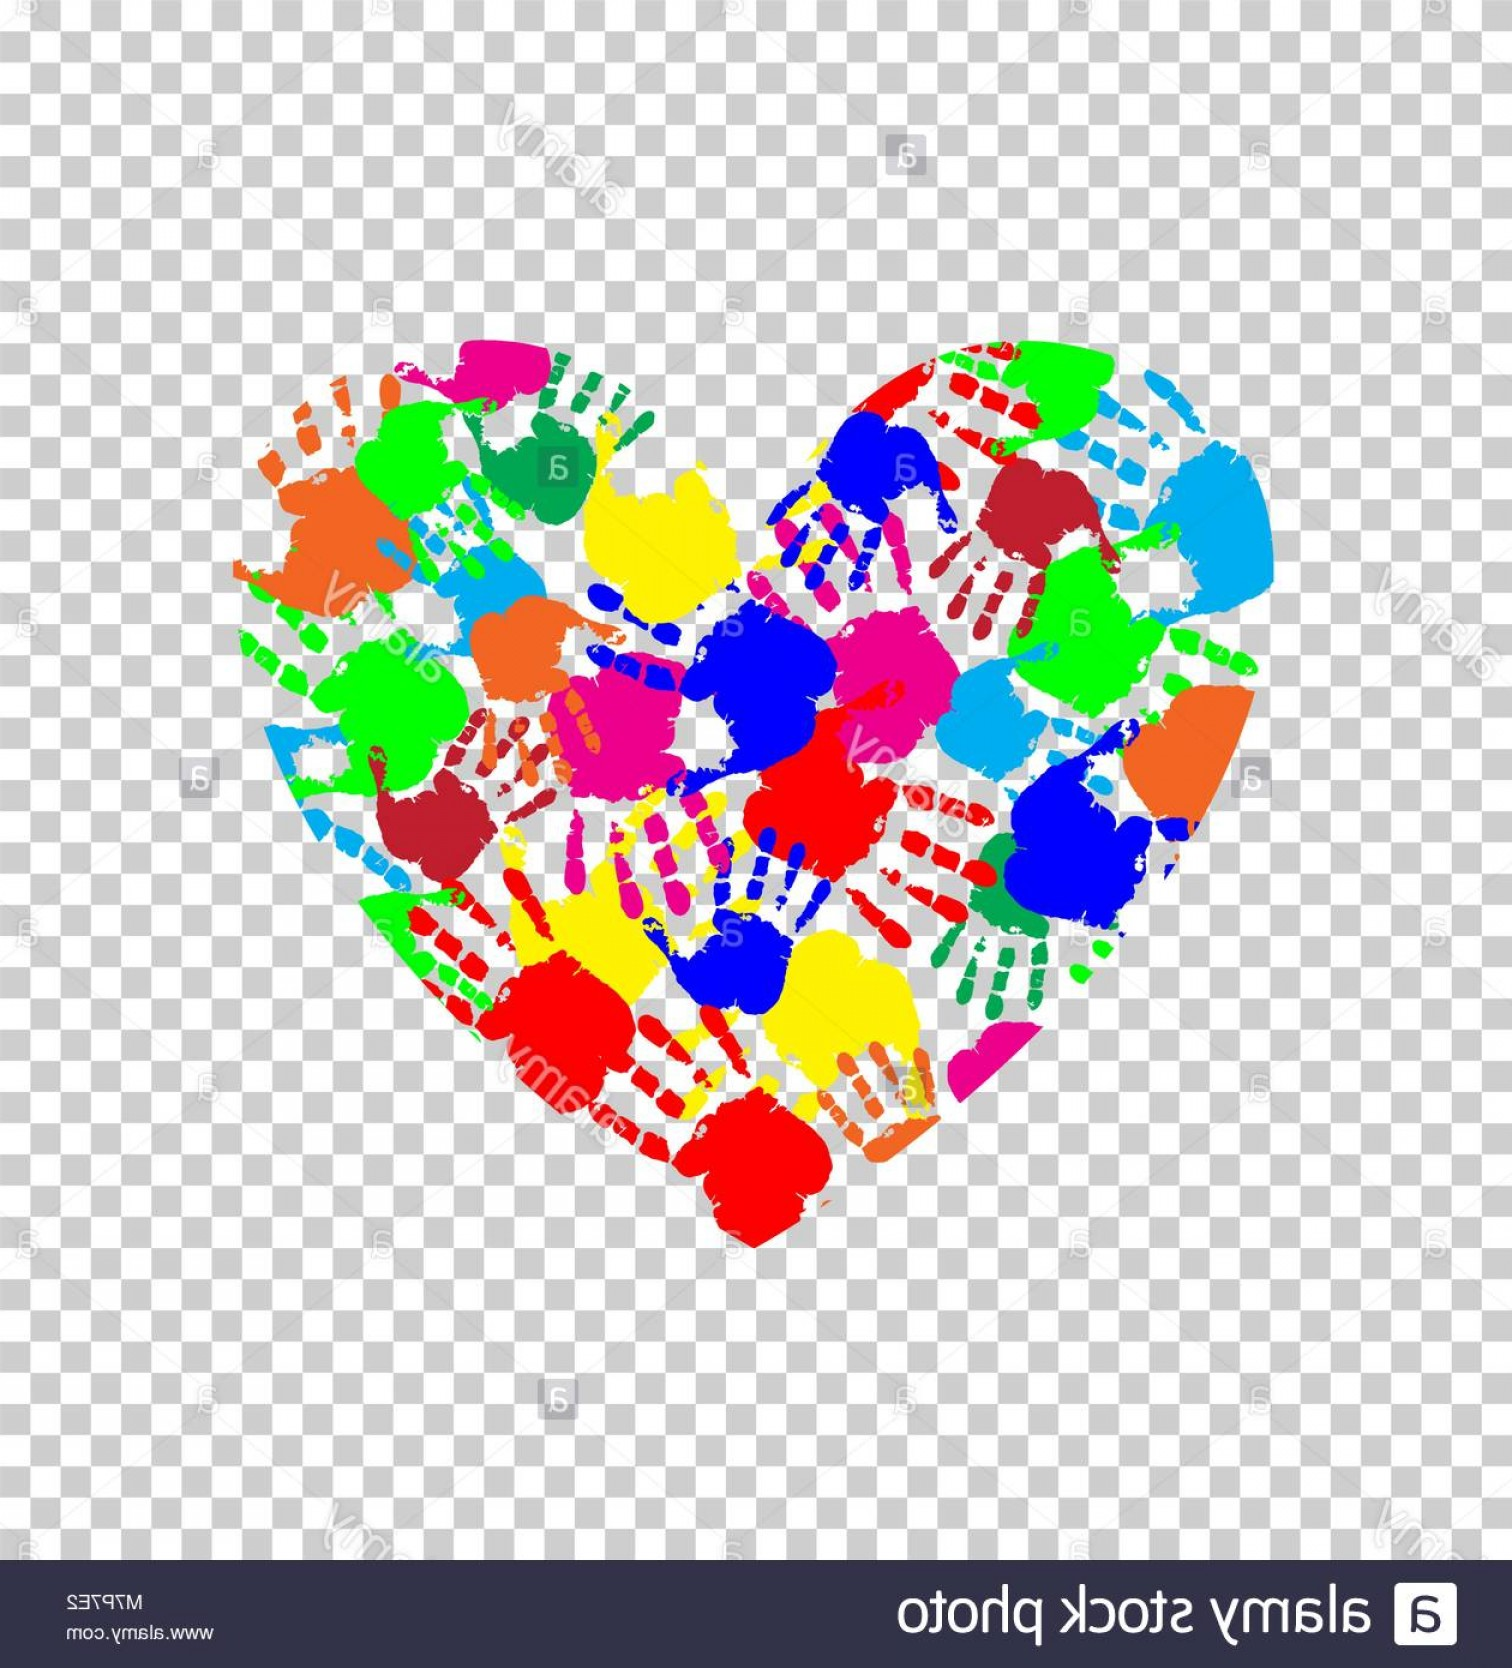 Hand Prints Vector Transparent Background: Stock Photo Vibrant Heart Icon Made Of Colored Hand Prints Isolated On Transparent